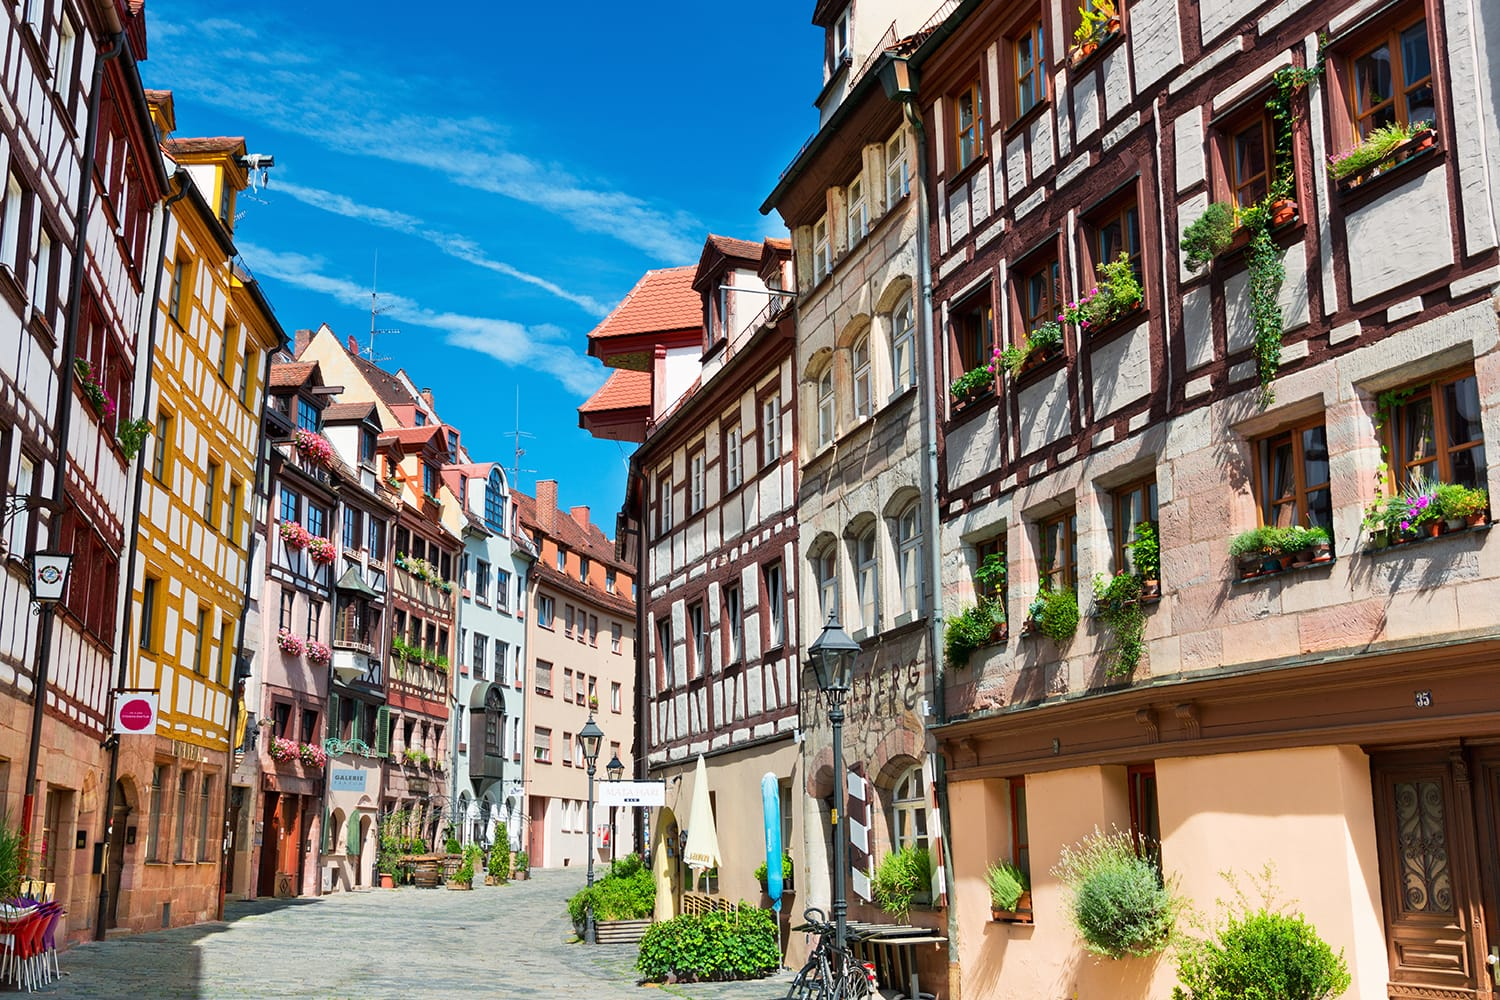 Old fachwerk houses on Weissgerbergasse street in the historical center of Nuremberg, Germany